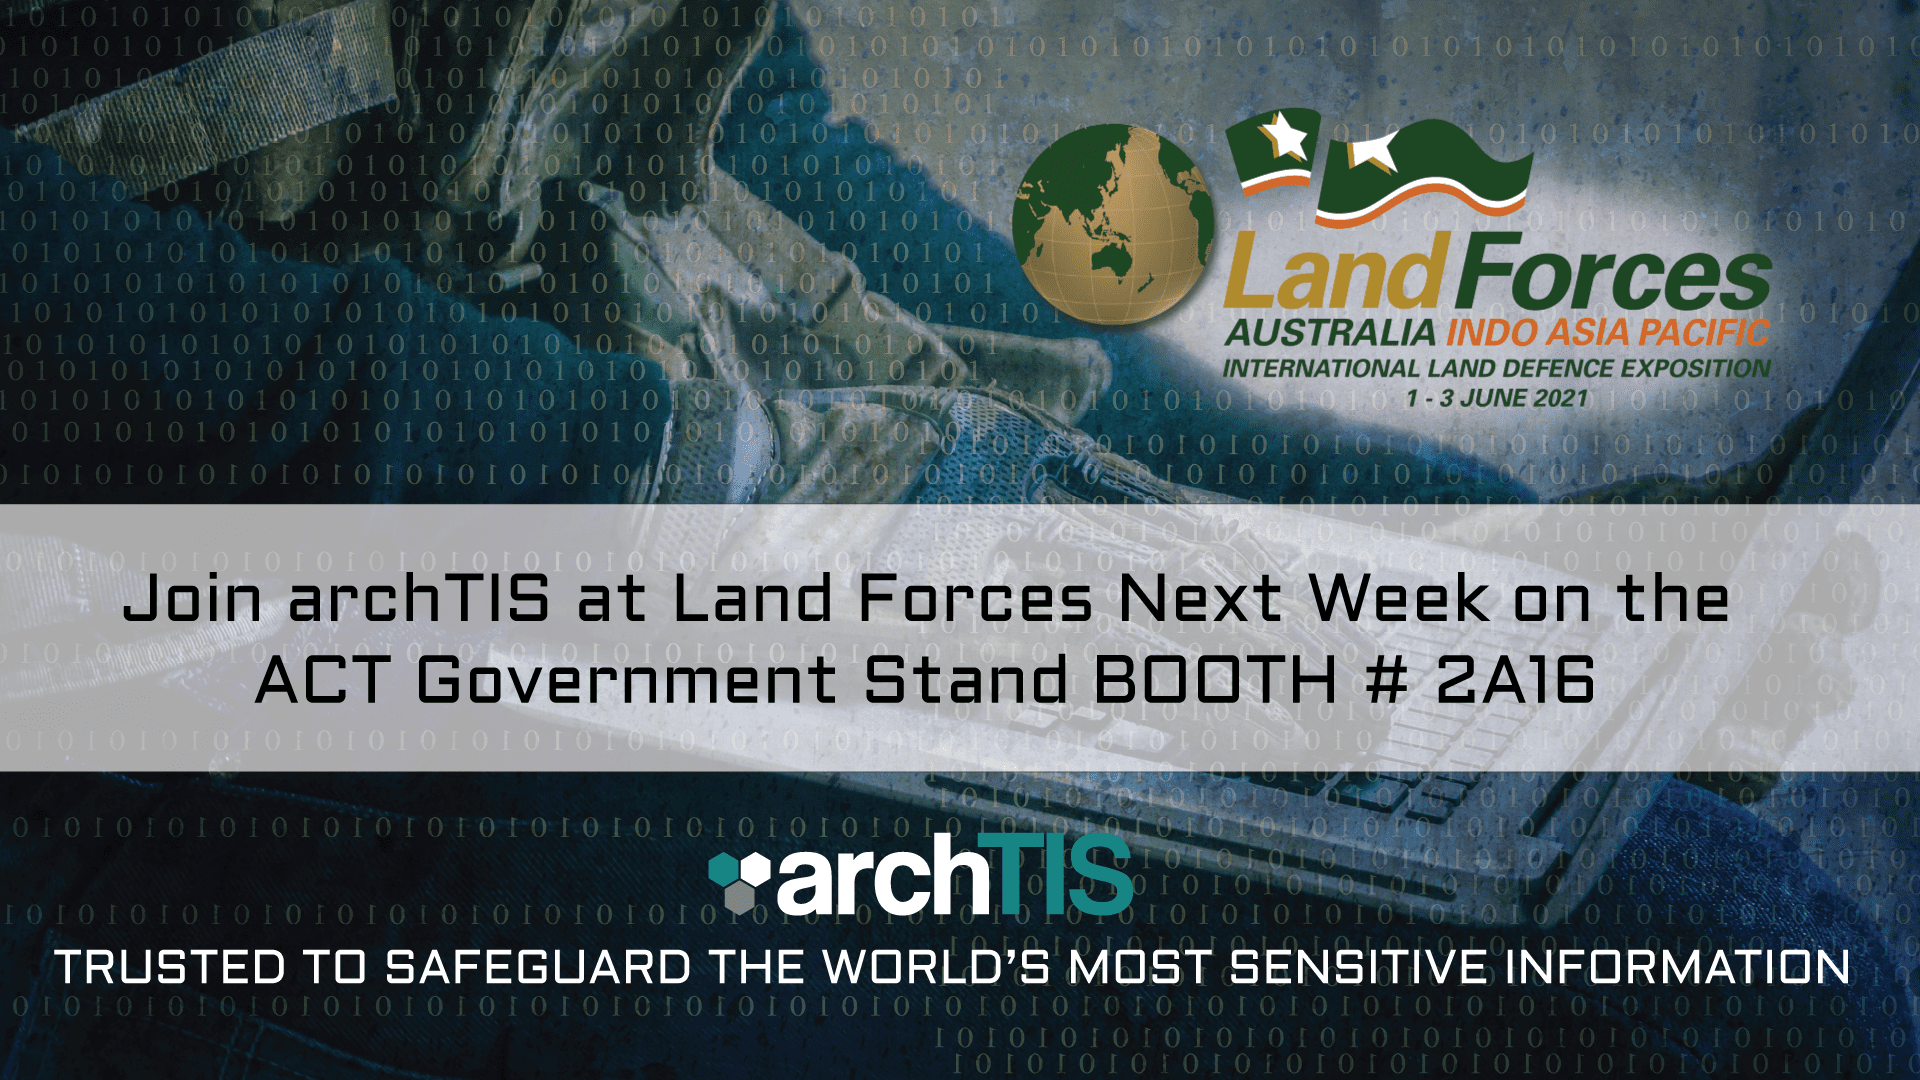 Join archTIS at Land Forces Next Week on the ACT Government Stand